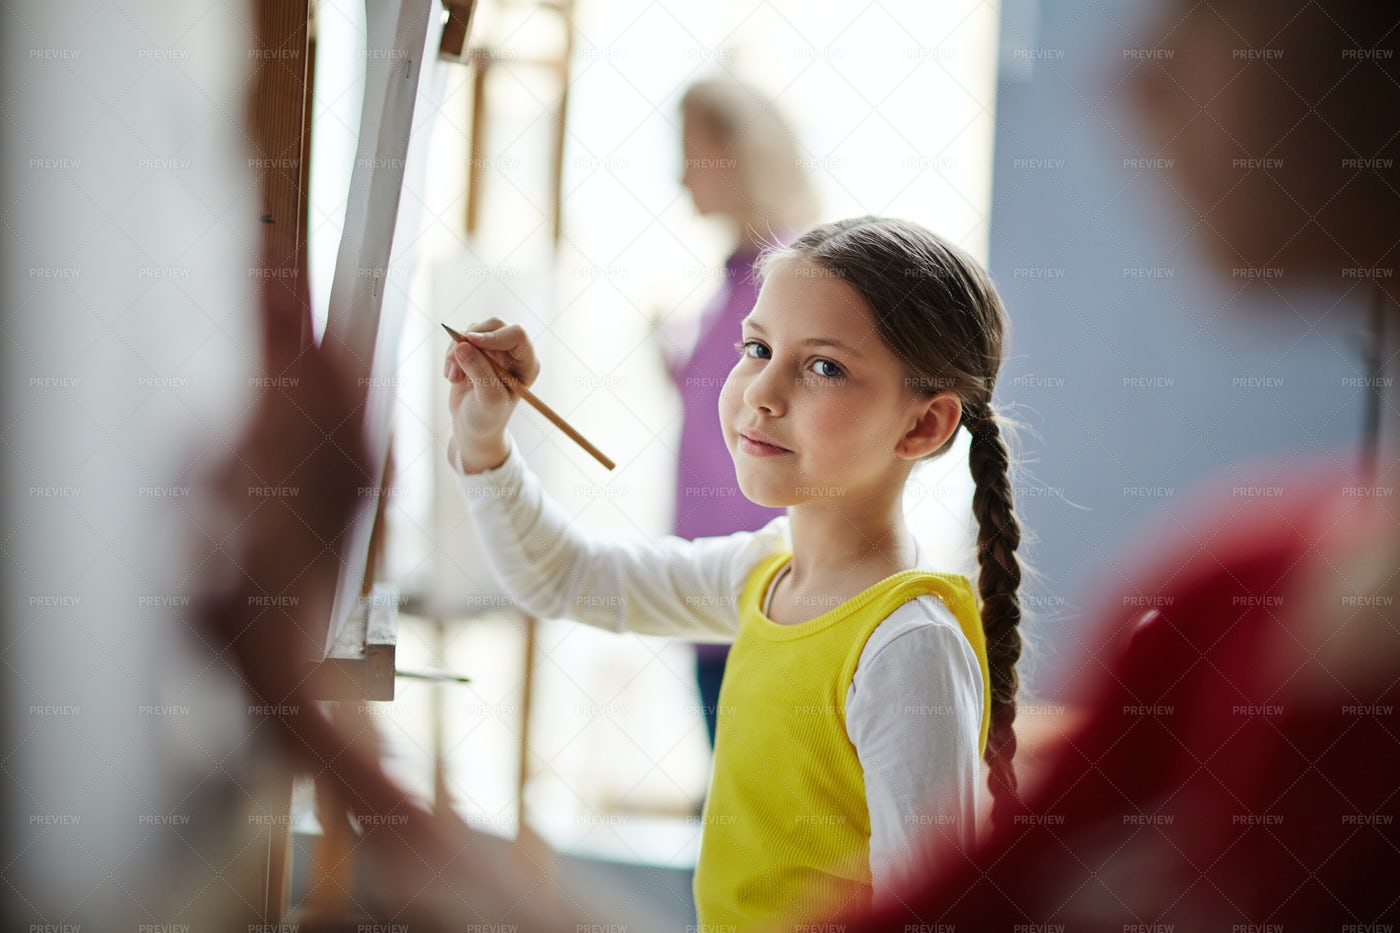 Kids Drawing On Easels In Art Class: Stock Photos